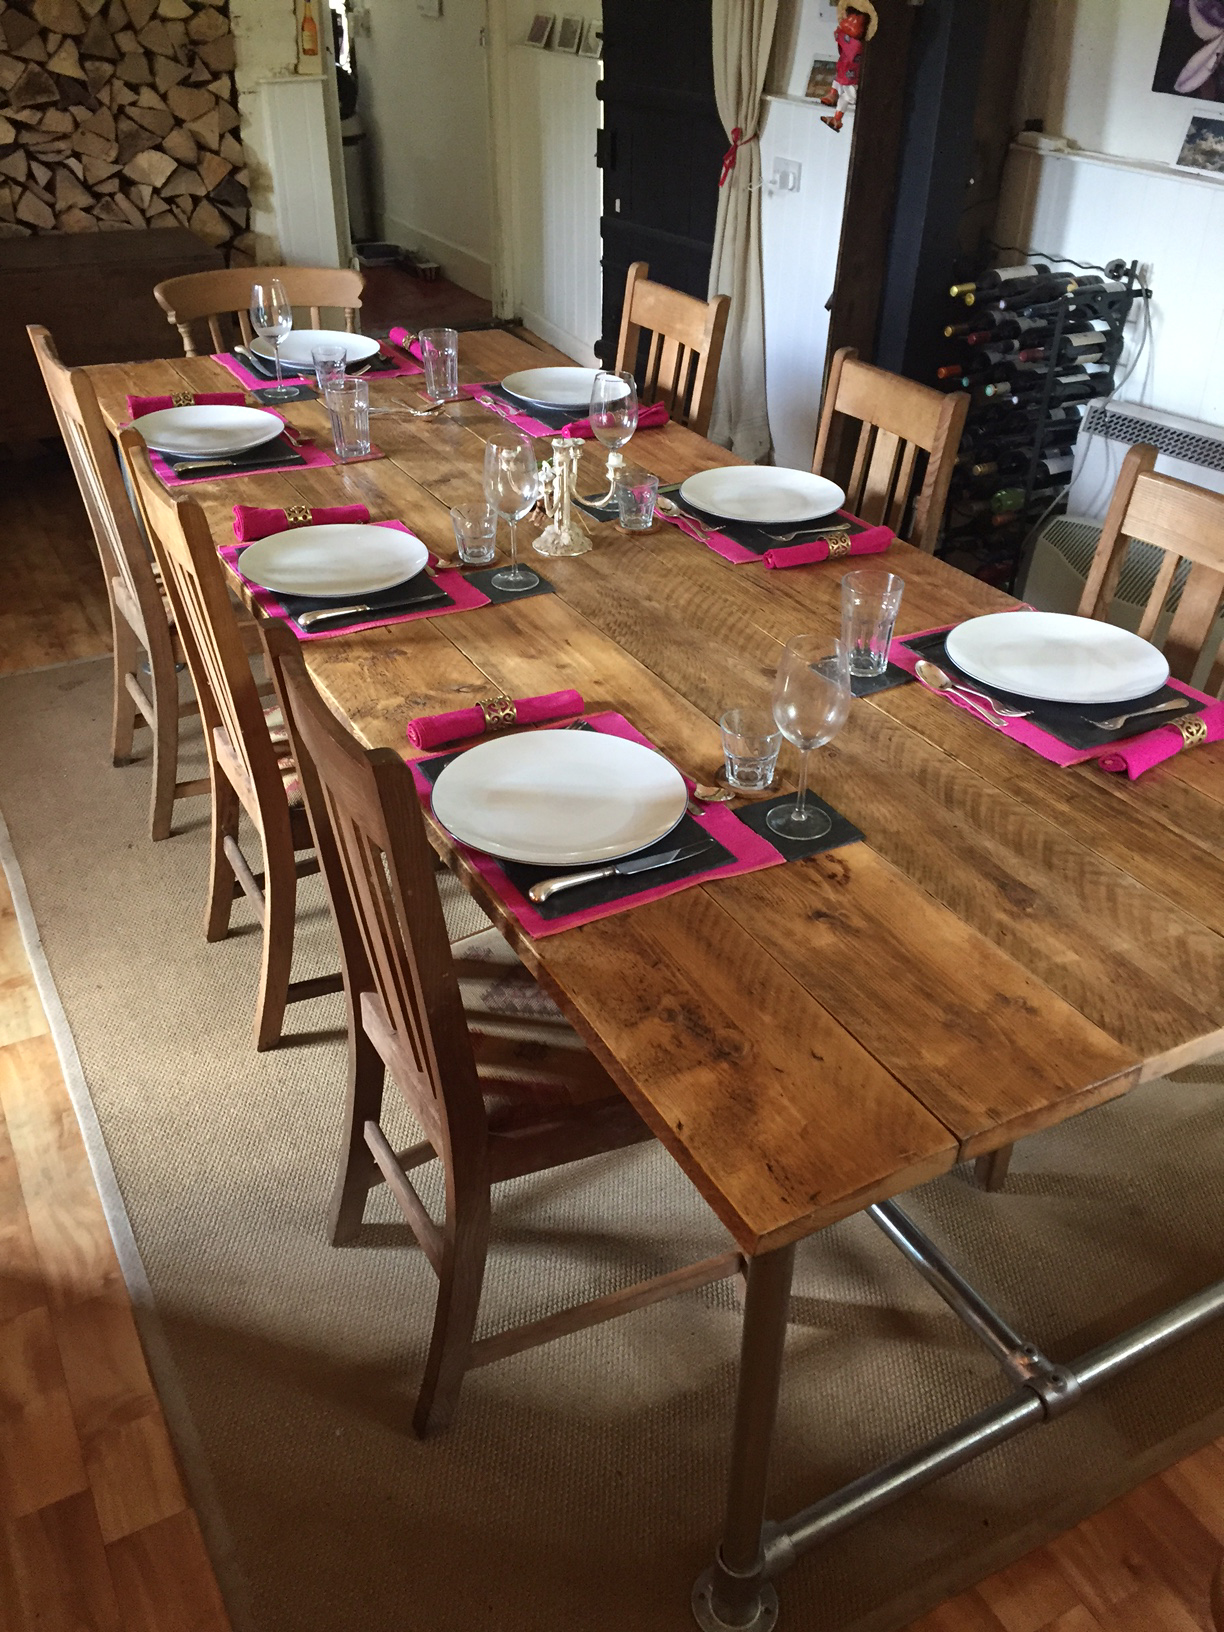 Kai's DIY Dining Table Ready For Guests